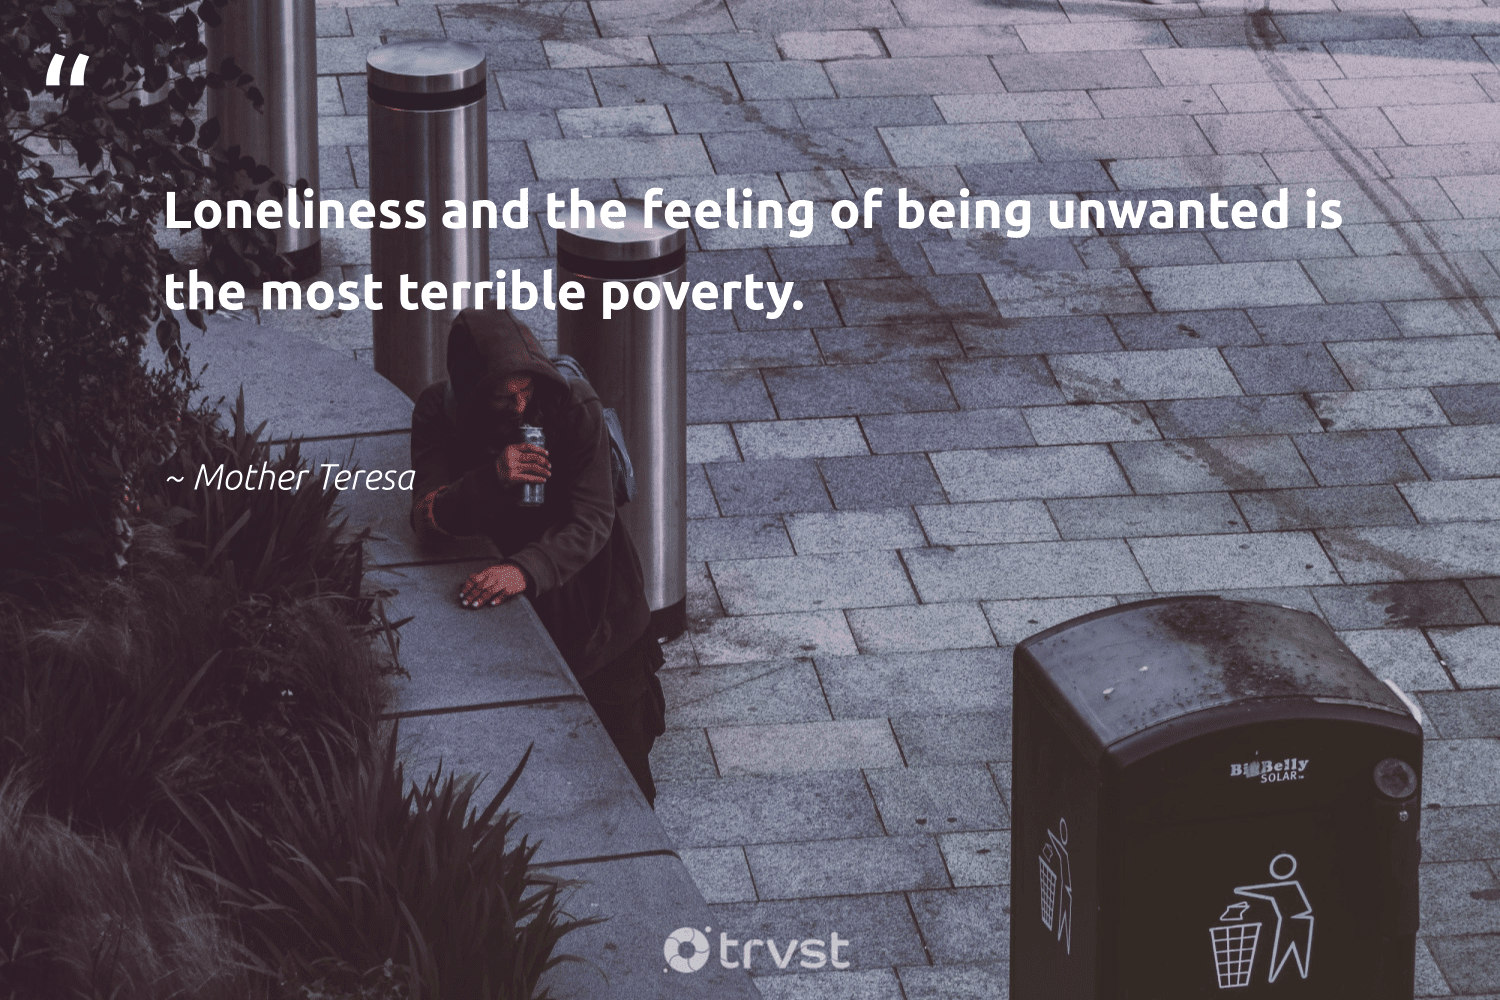 """""""Loneliness and the feeling of being unwanted is the most terrible poverty.""""  - Mother Teresa #trvst #quotes #poverty #endpoverty #equalopportunity #inclusion #socialimpact #equalrights #weareallone #dosomething #makeadifference #sustainablefutures"""